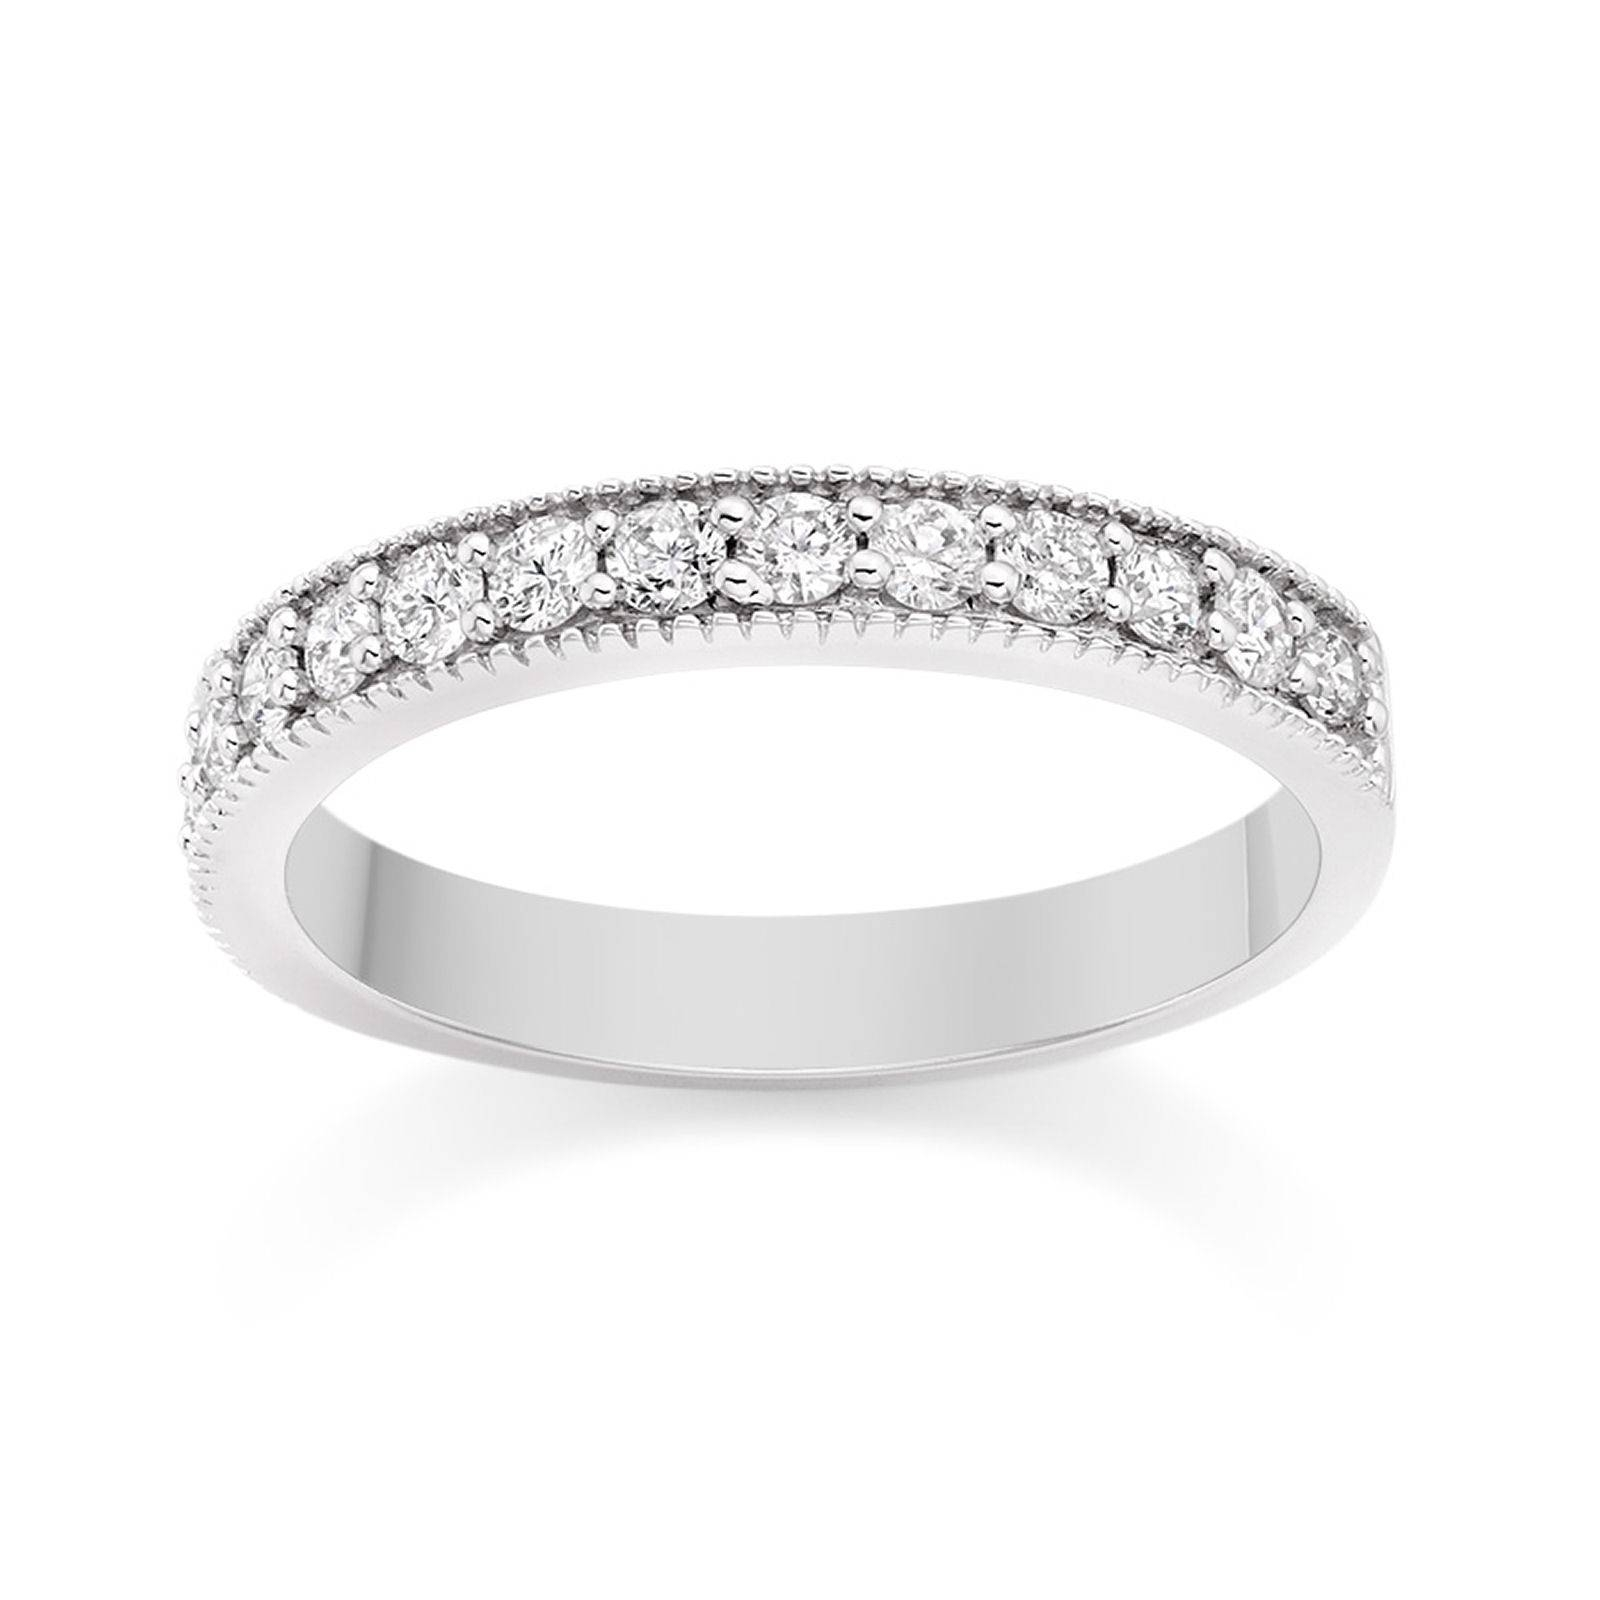 Platinum Diamond Wedding Rings | Wedding, Promise, Diamond Throughout Platinum Wedding Rings With Diamonds (View 12 of 15)